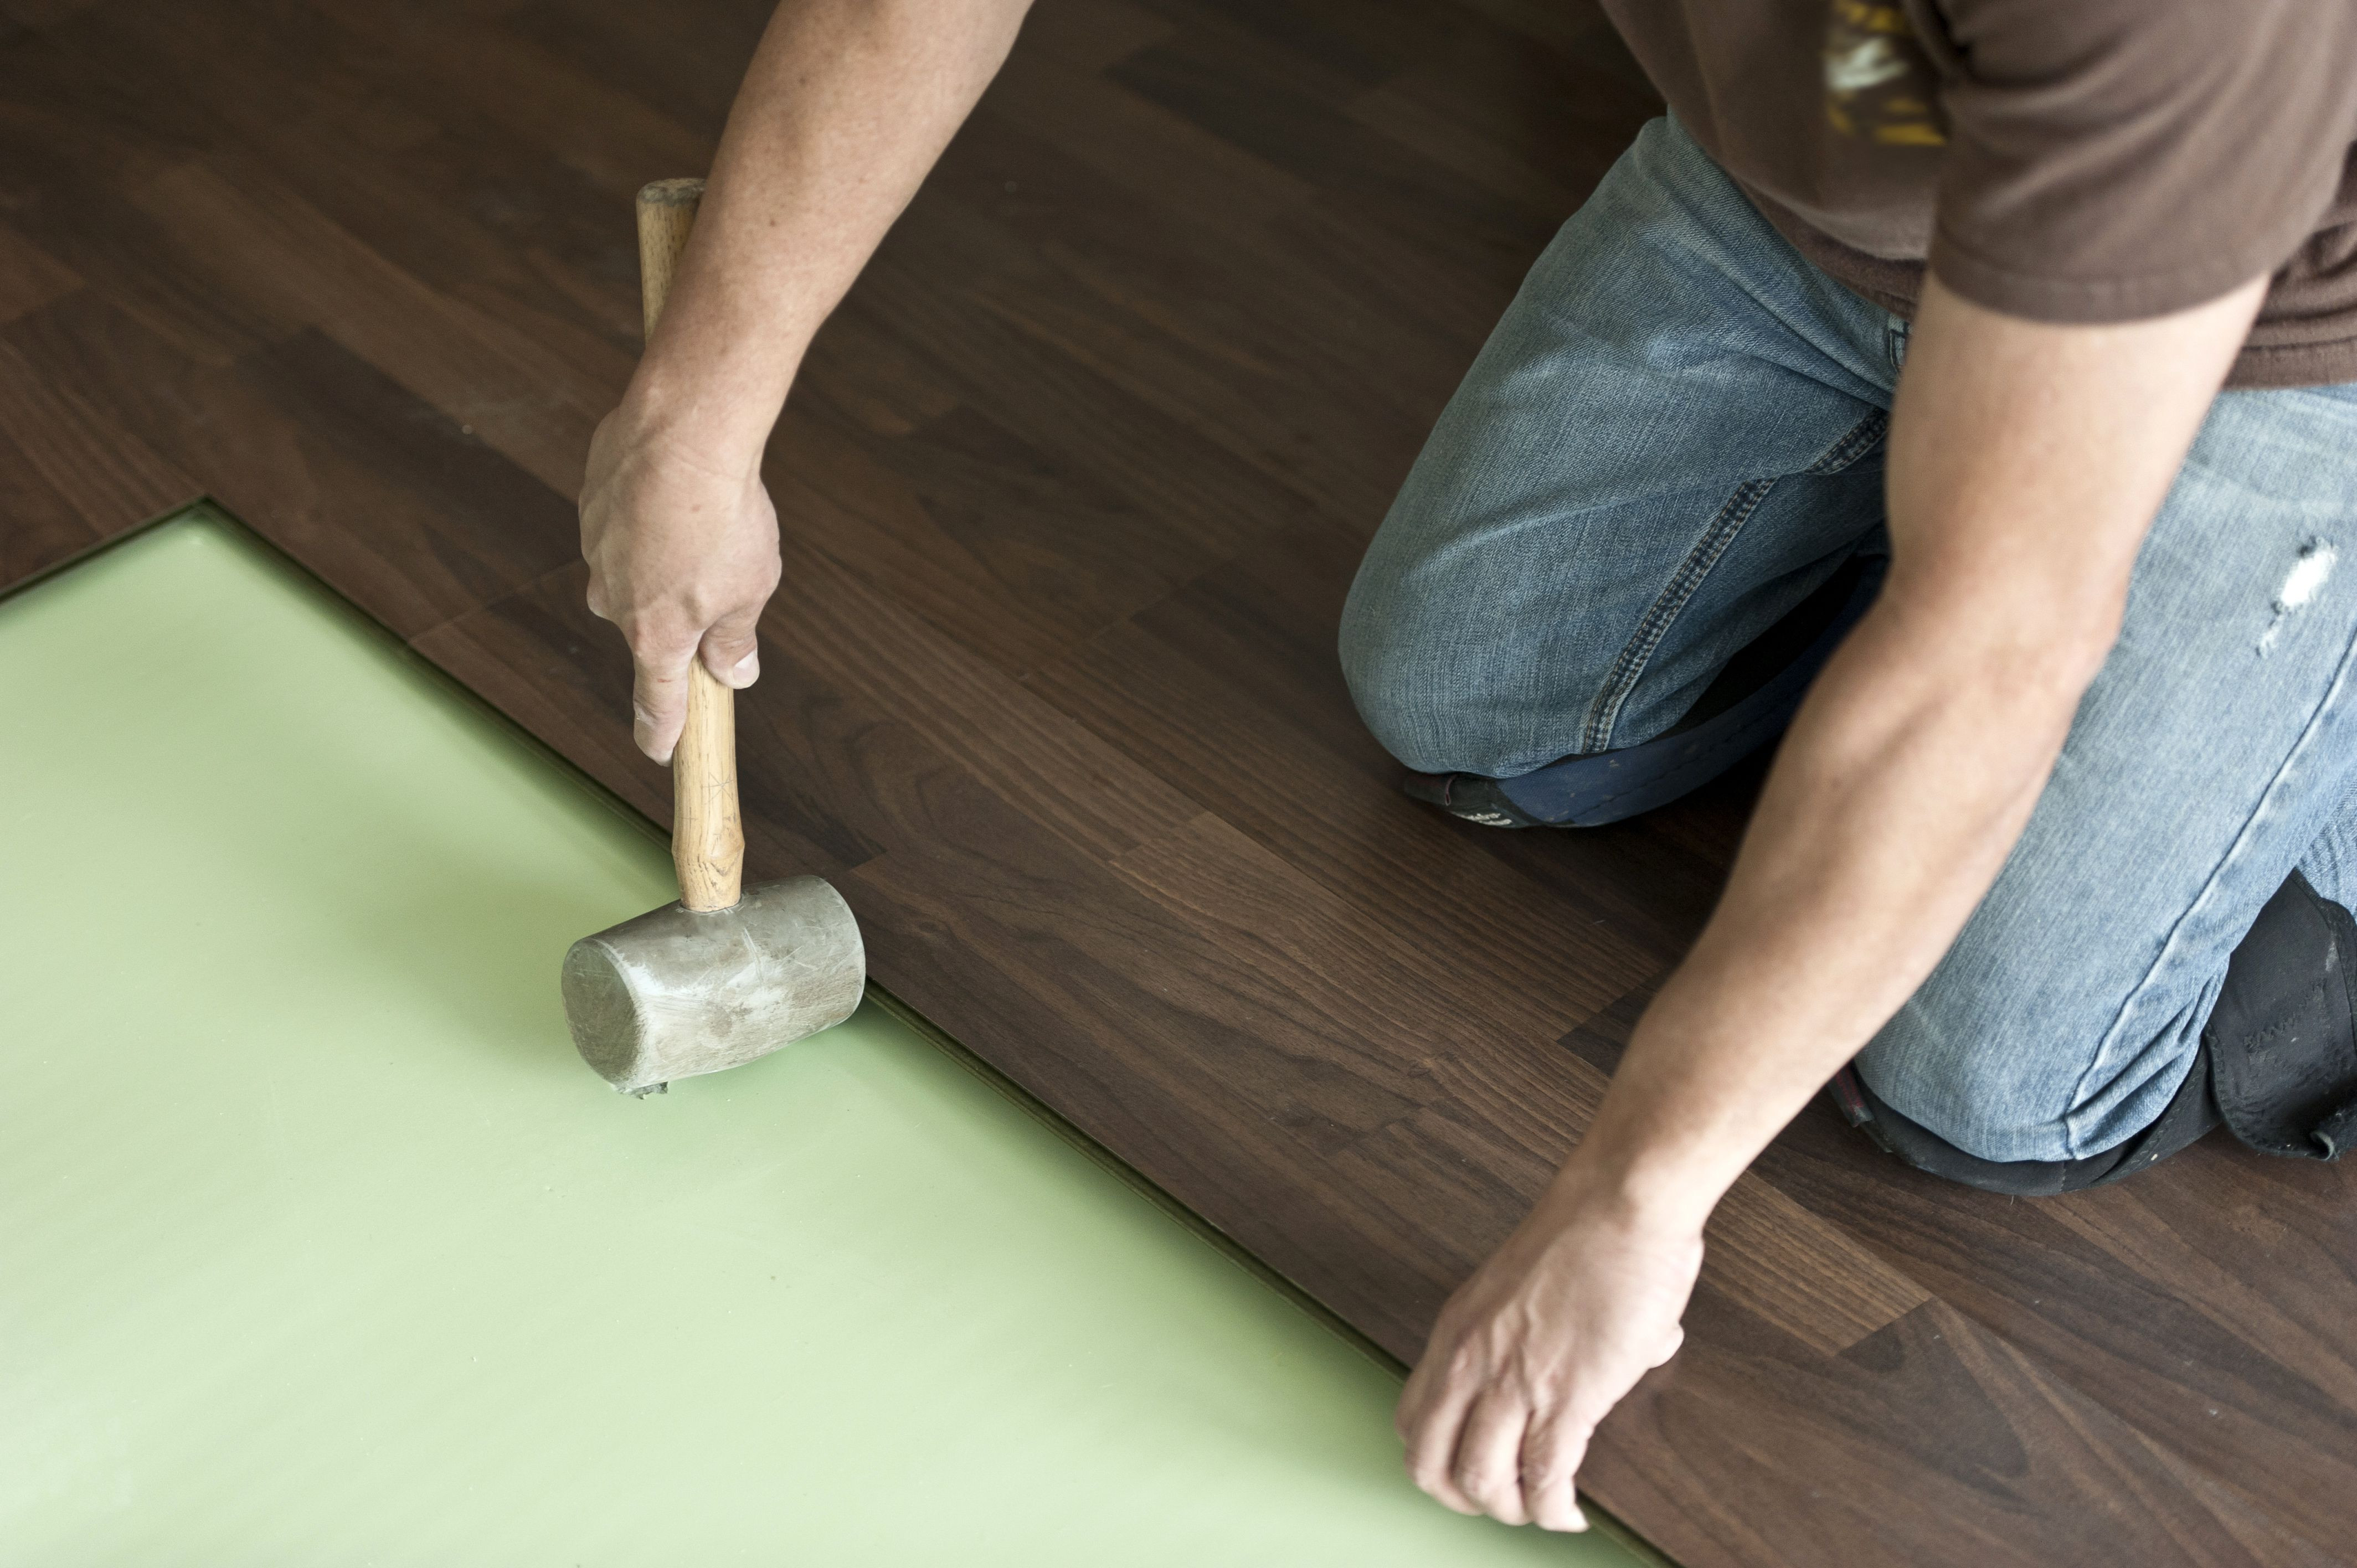 how to install hardwood floors next to carpet of can a foam pad be use under solid hardwood flooring inside installing hardwood floor 155149312 57e967d45f9b586c35ade84a